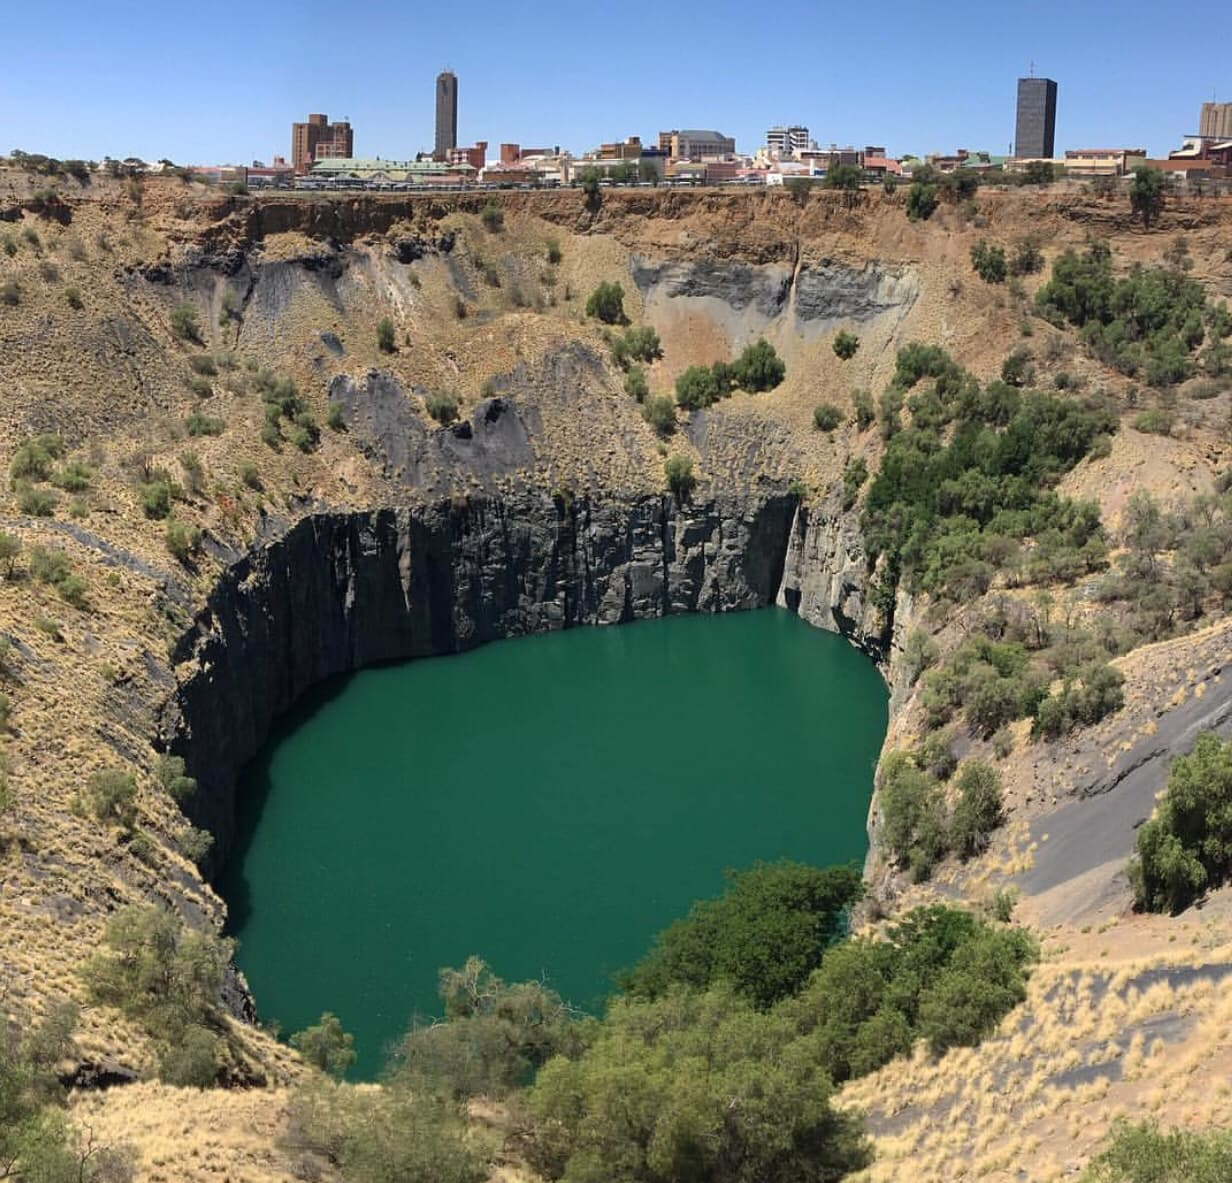 The Big Hole, Kimberly, South Africa Guide